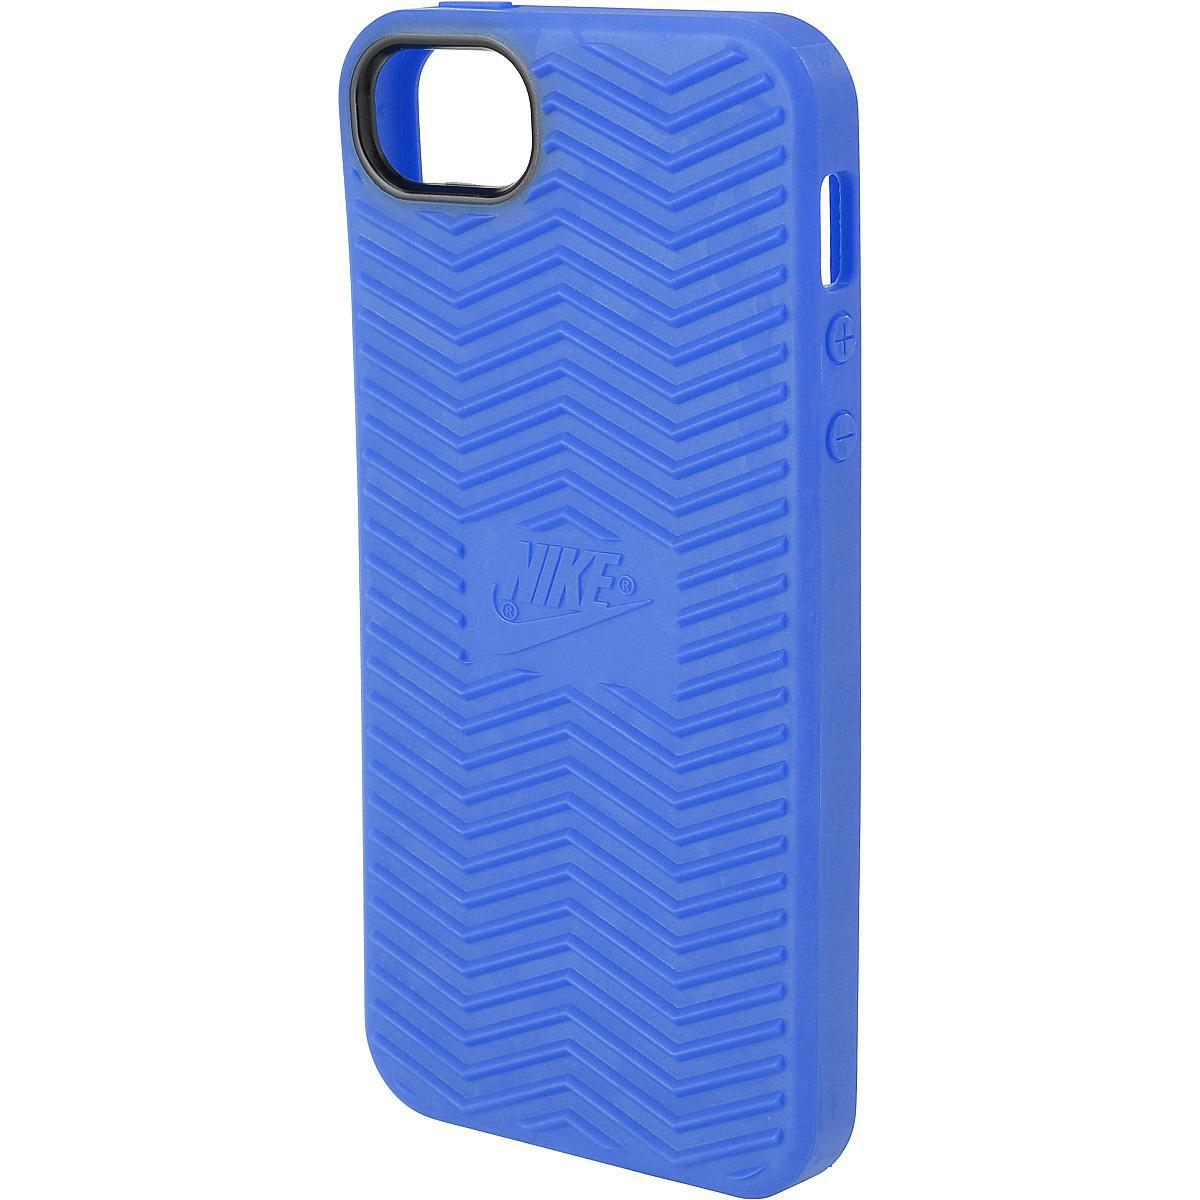 Royals Iphone 5s Case Iphone 5/5s Royal Blue